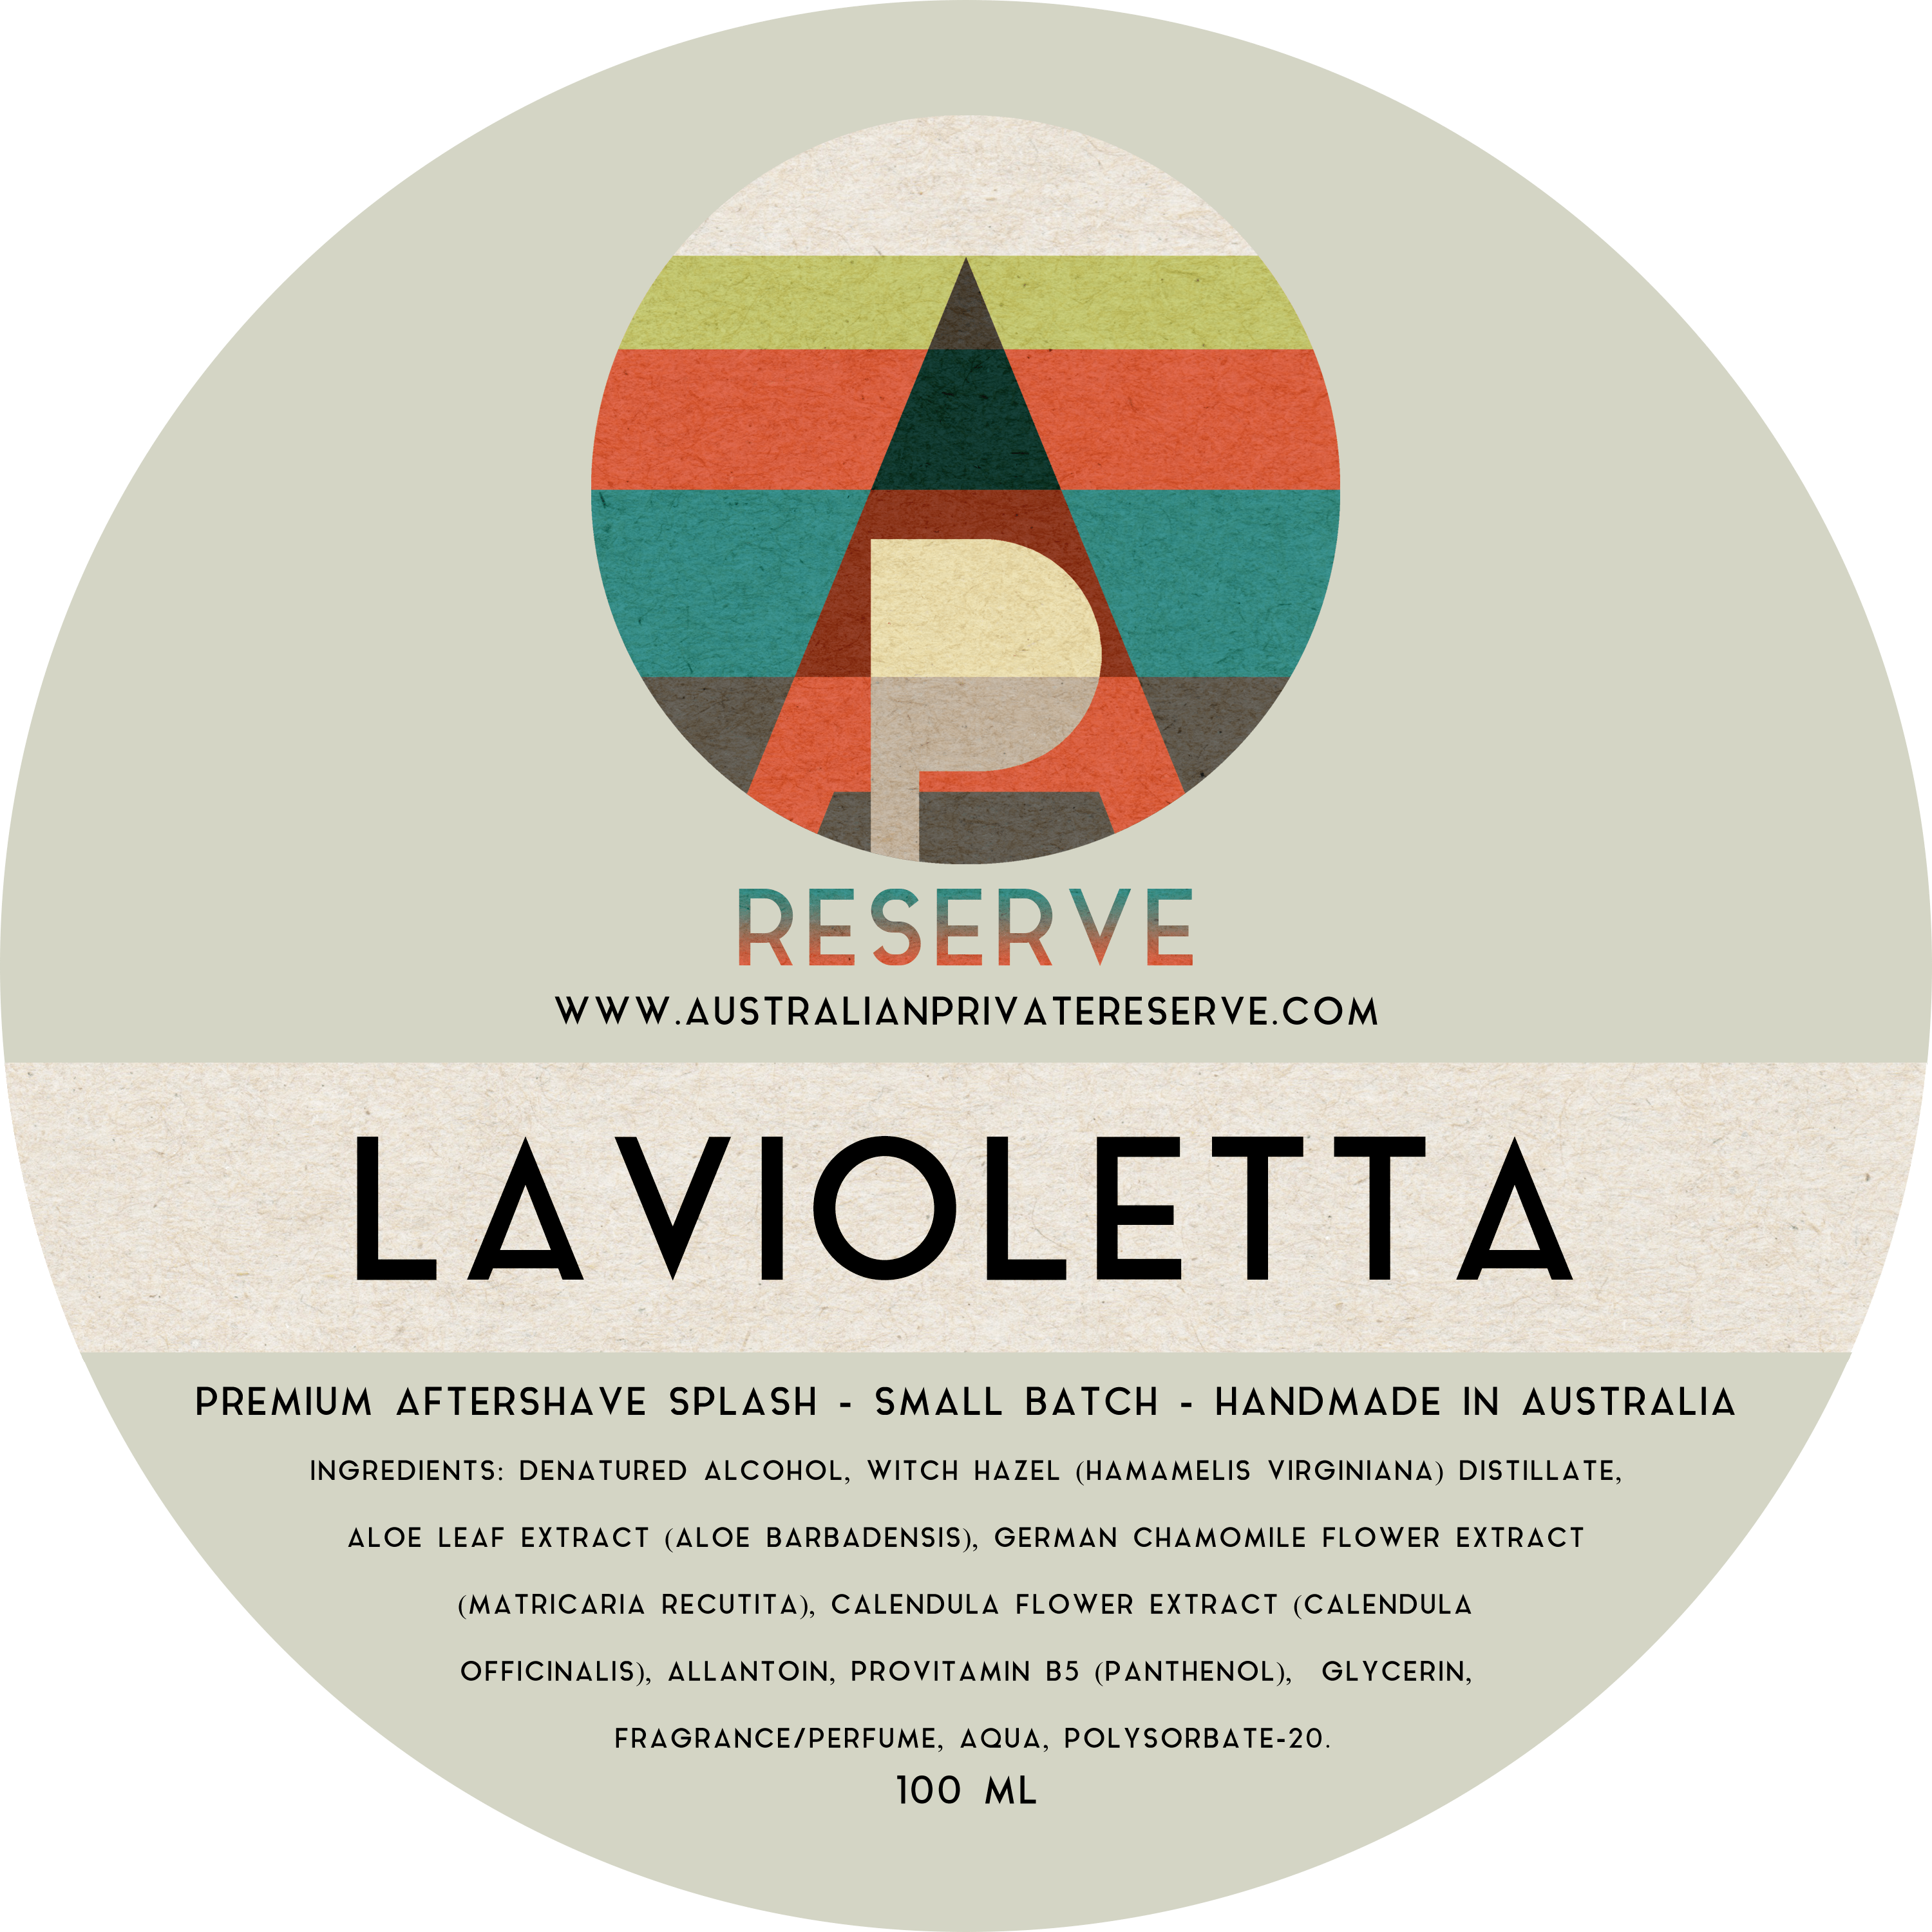 Australian Private Reserve - Lavioletta - Aftershave image